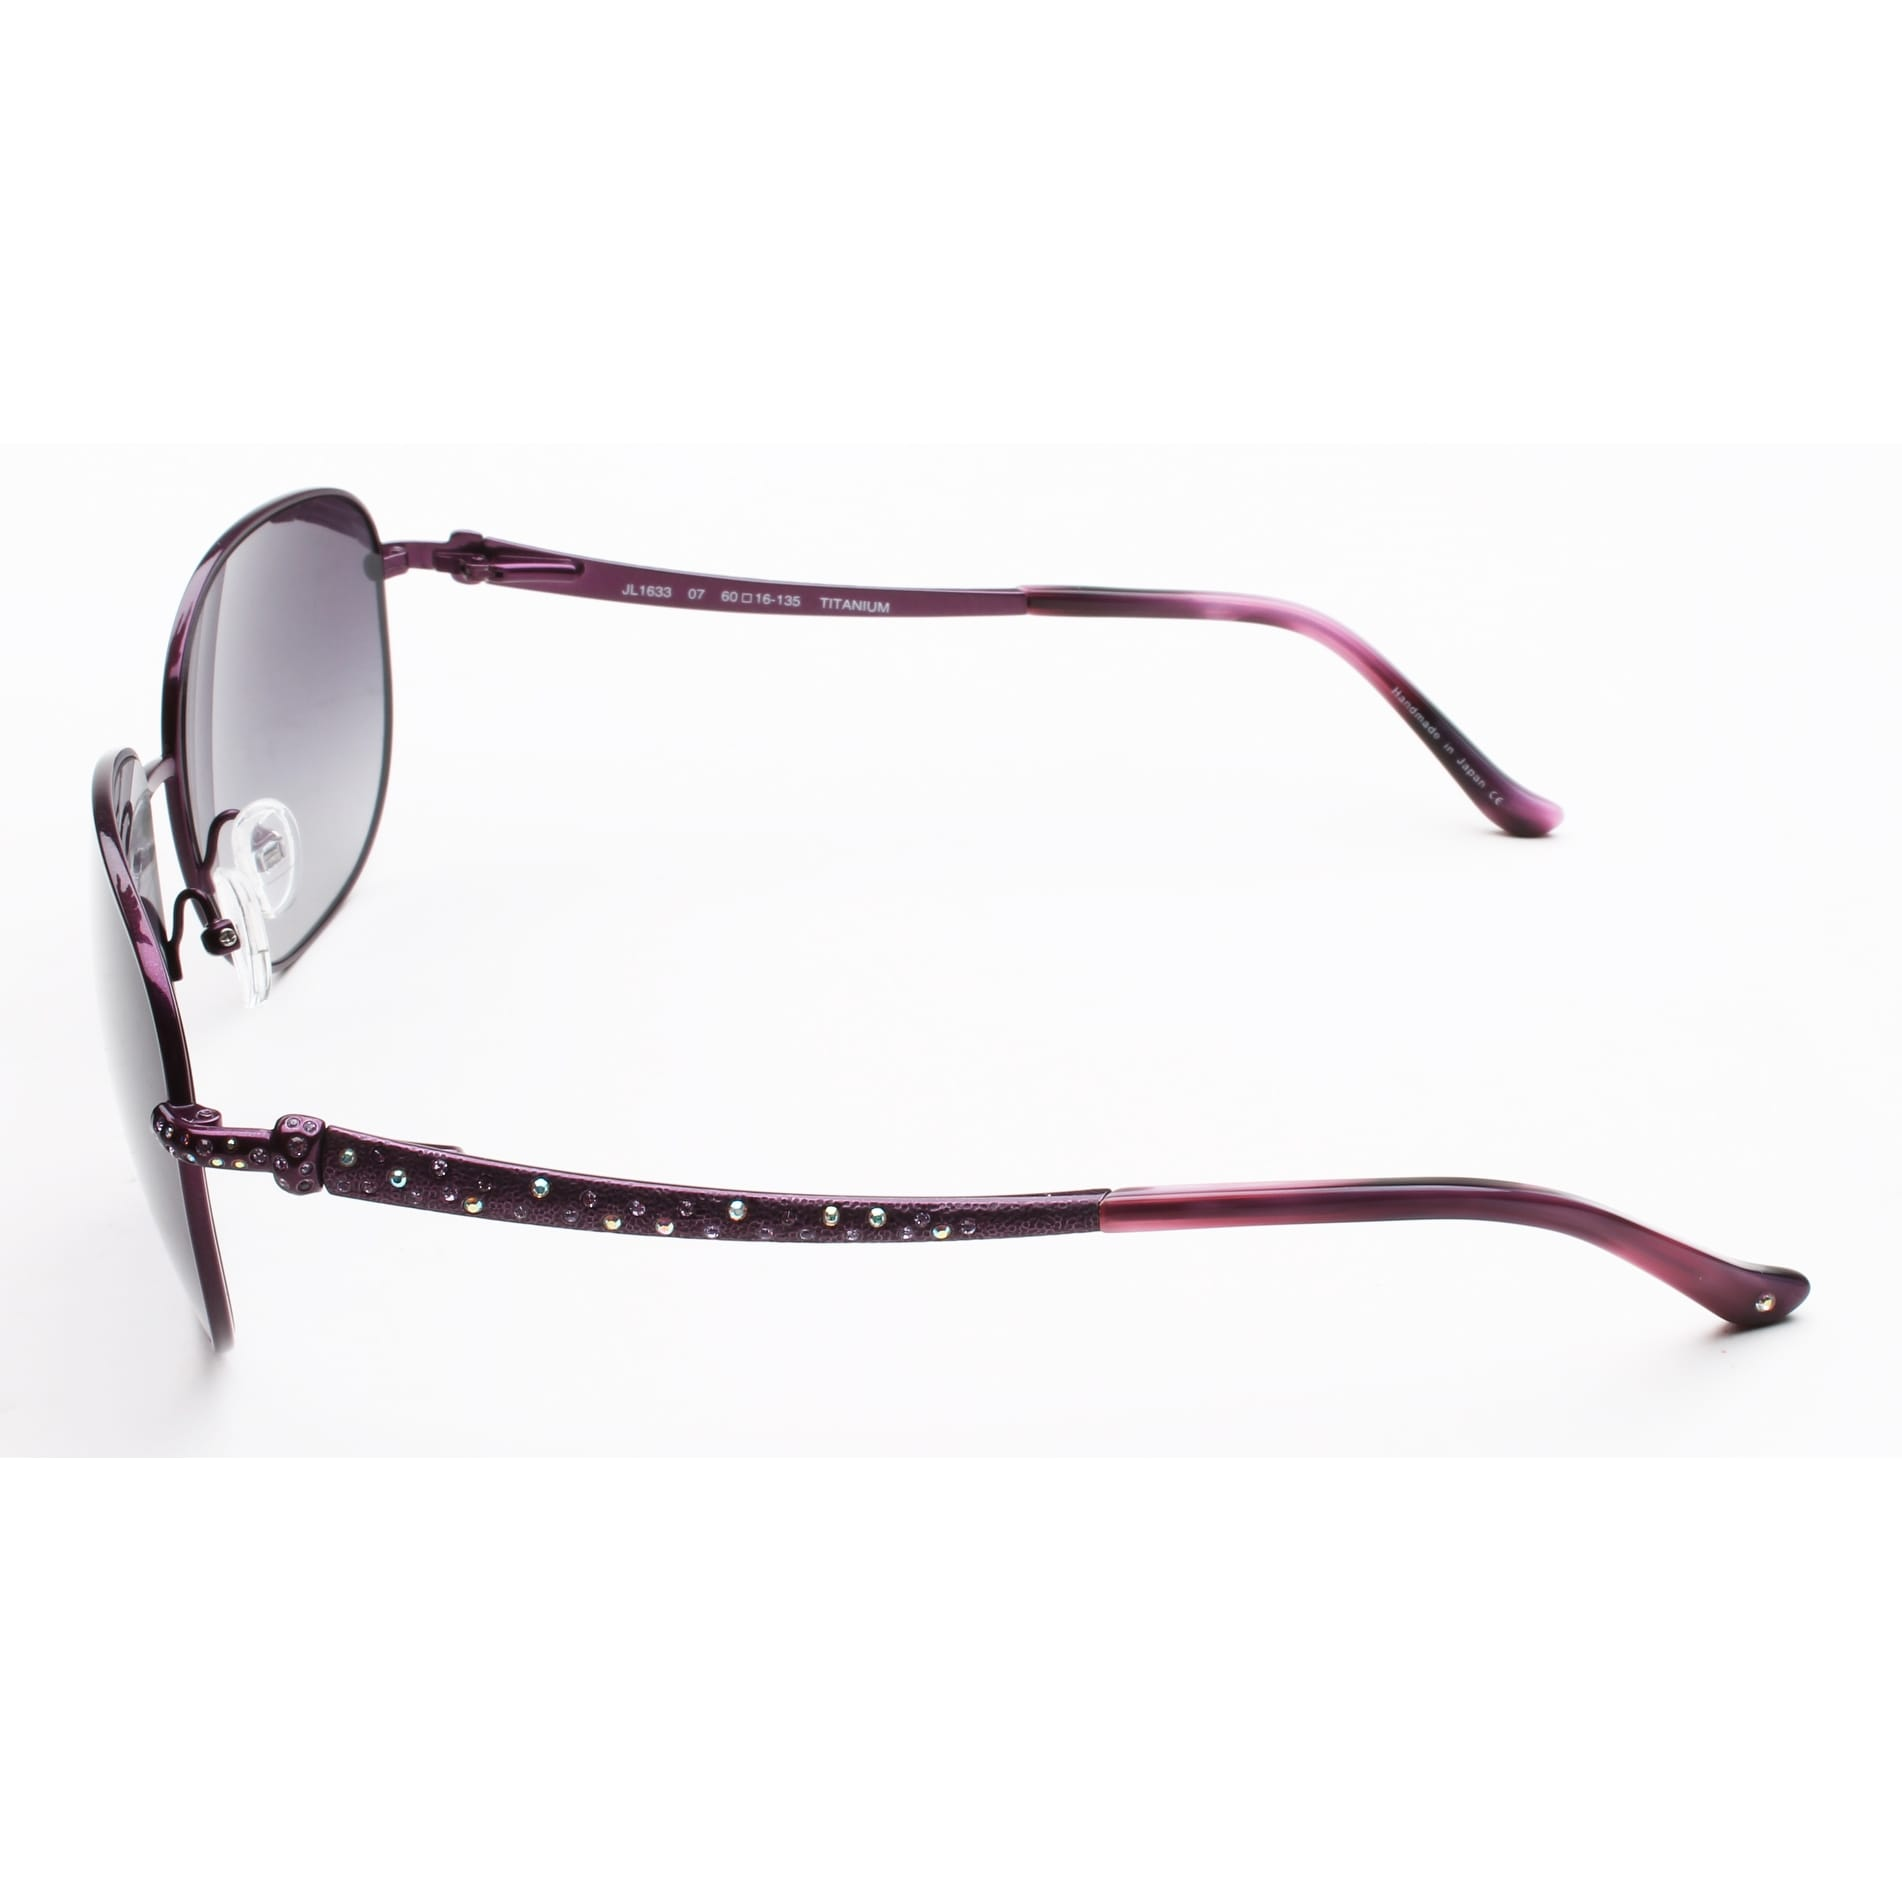 641353740be Judith Leiber Women s Hammered Sunglasses Amethyst - Purple - Small - Free  Shipping Today - Overstock.com - 19135361